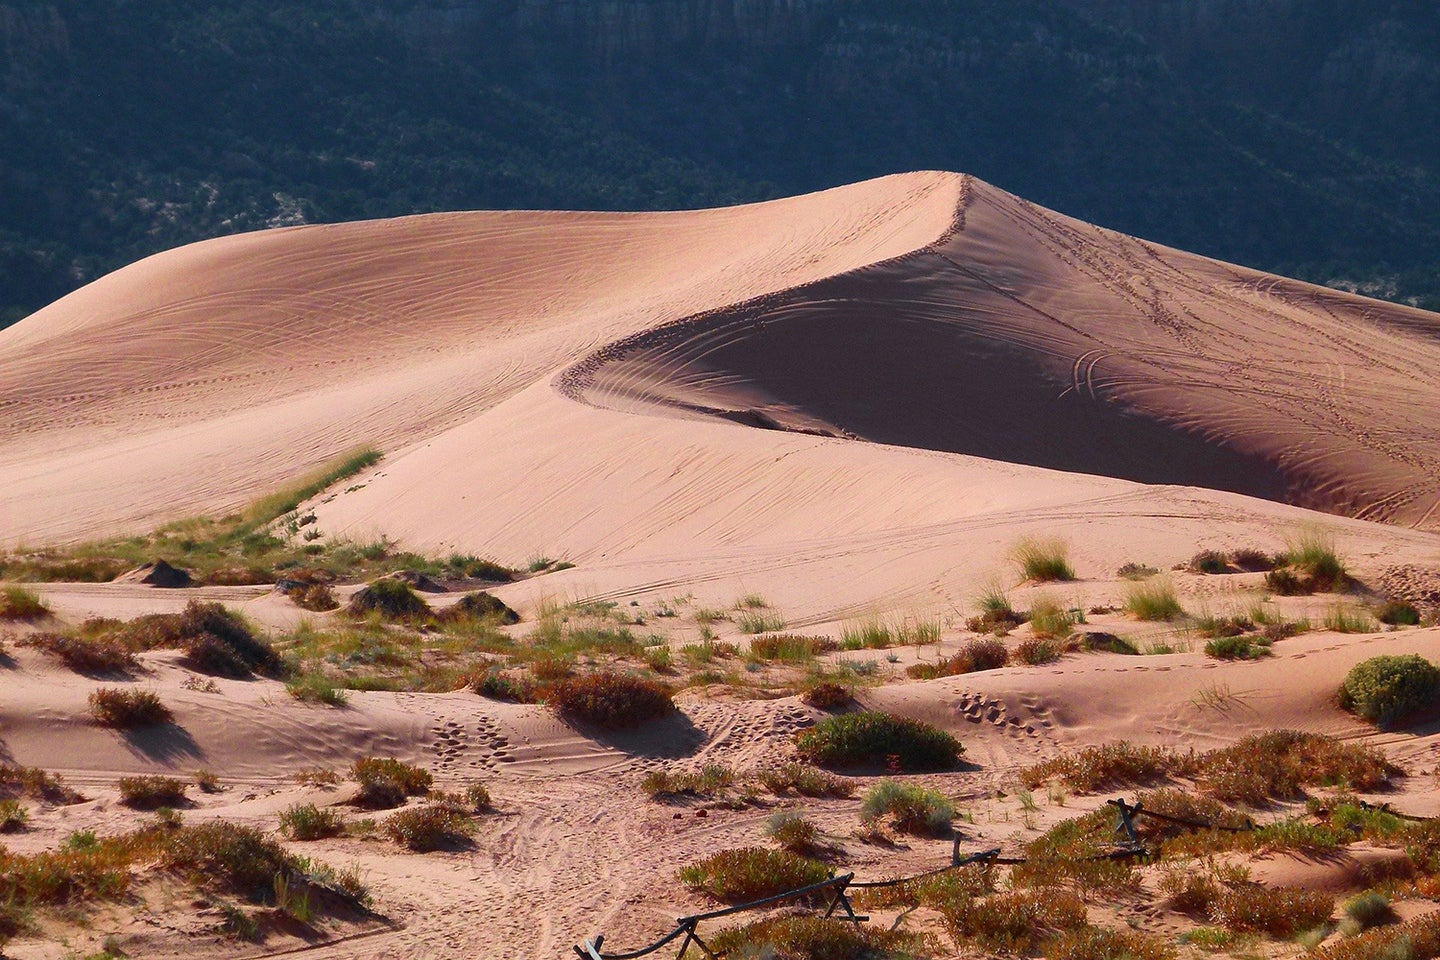 A sand hill in the desert.